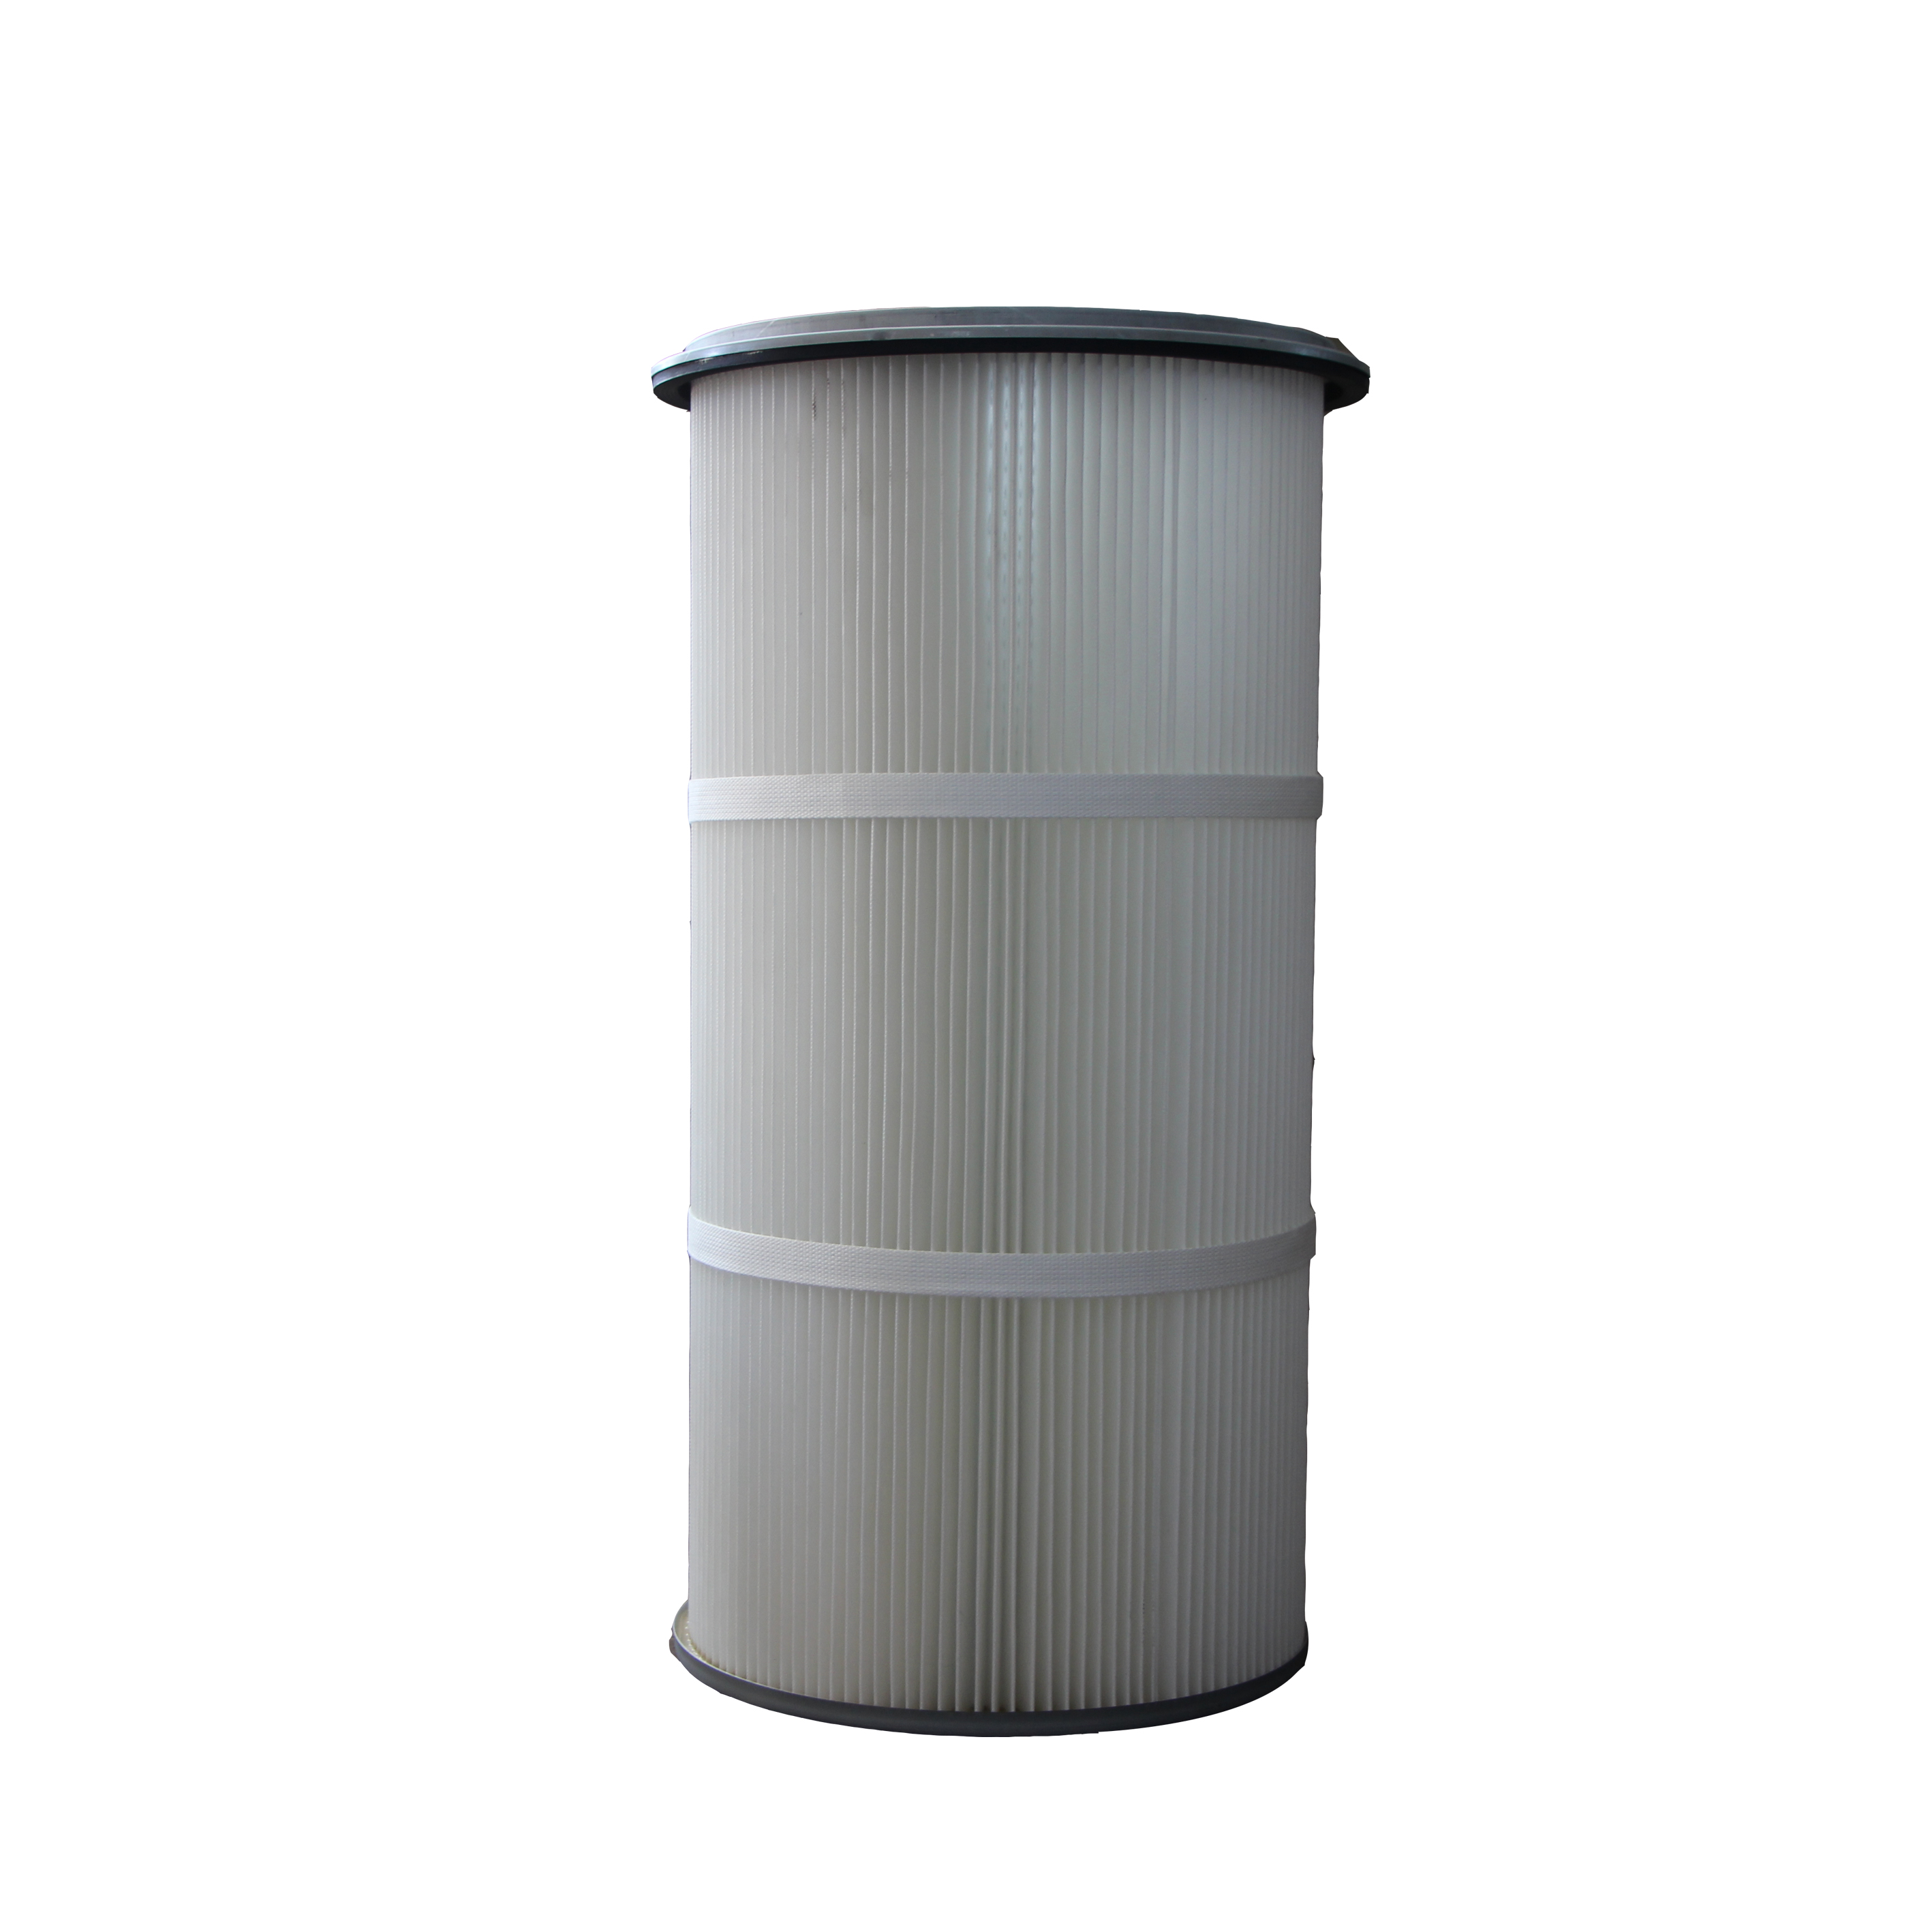 Hoge efficiëntie luchtcompressor filters dust filter cartridge